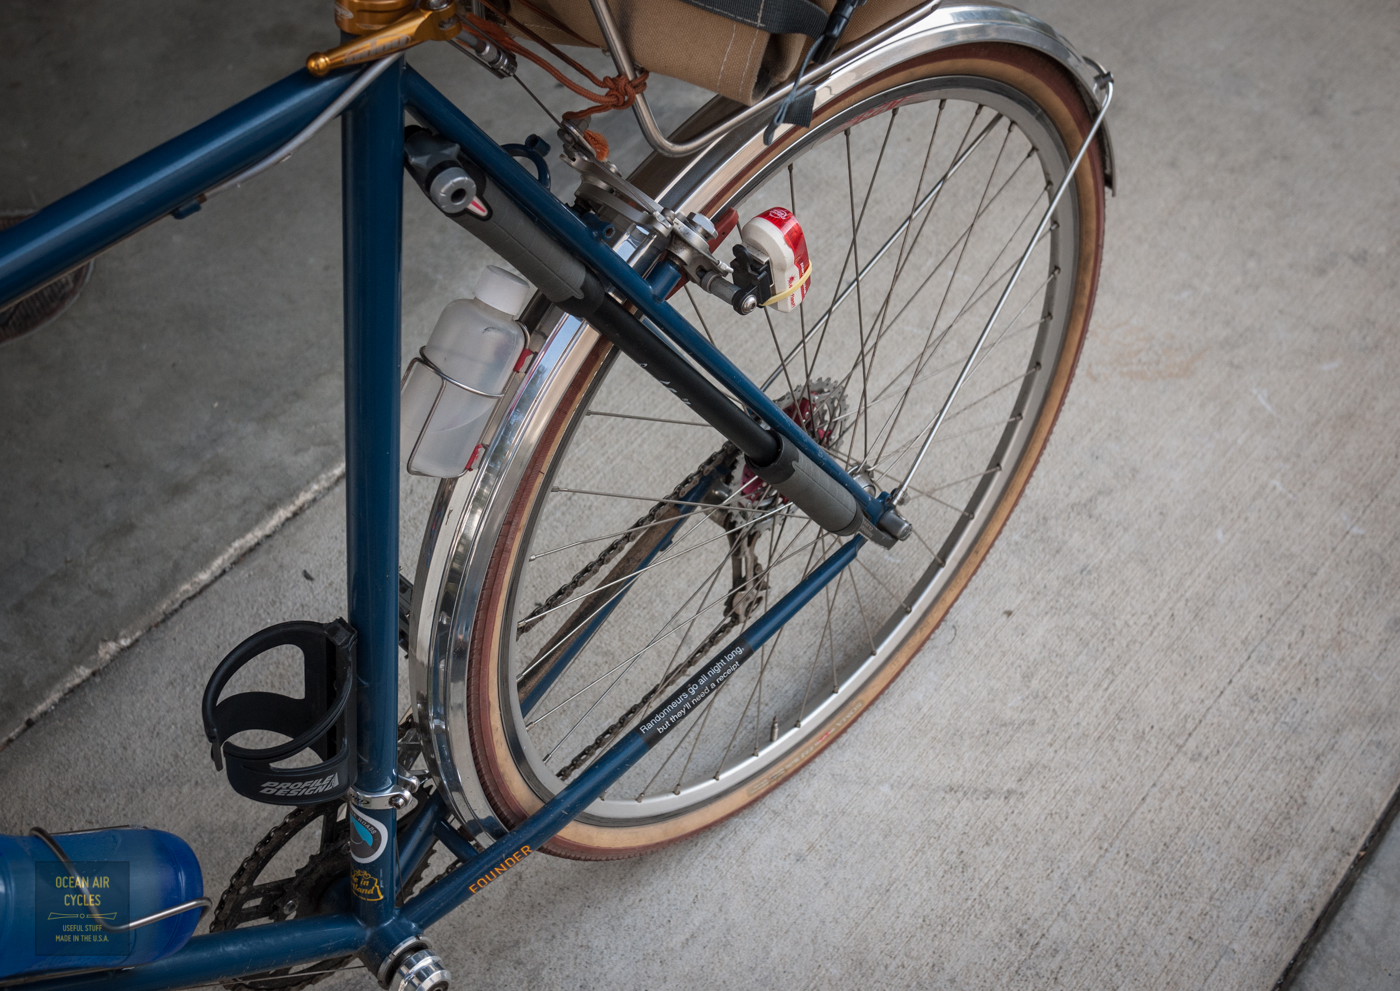 Carrying A Pump on the Rambler | Ocean Air Cycles - Click to Shop